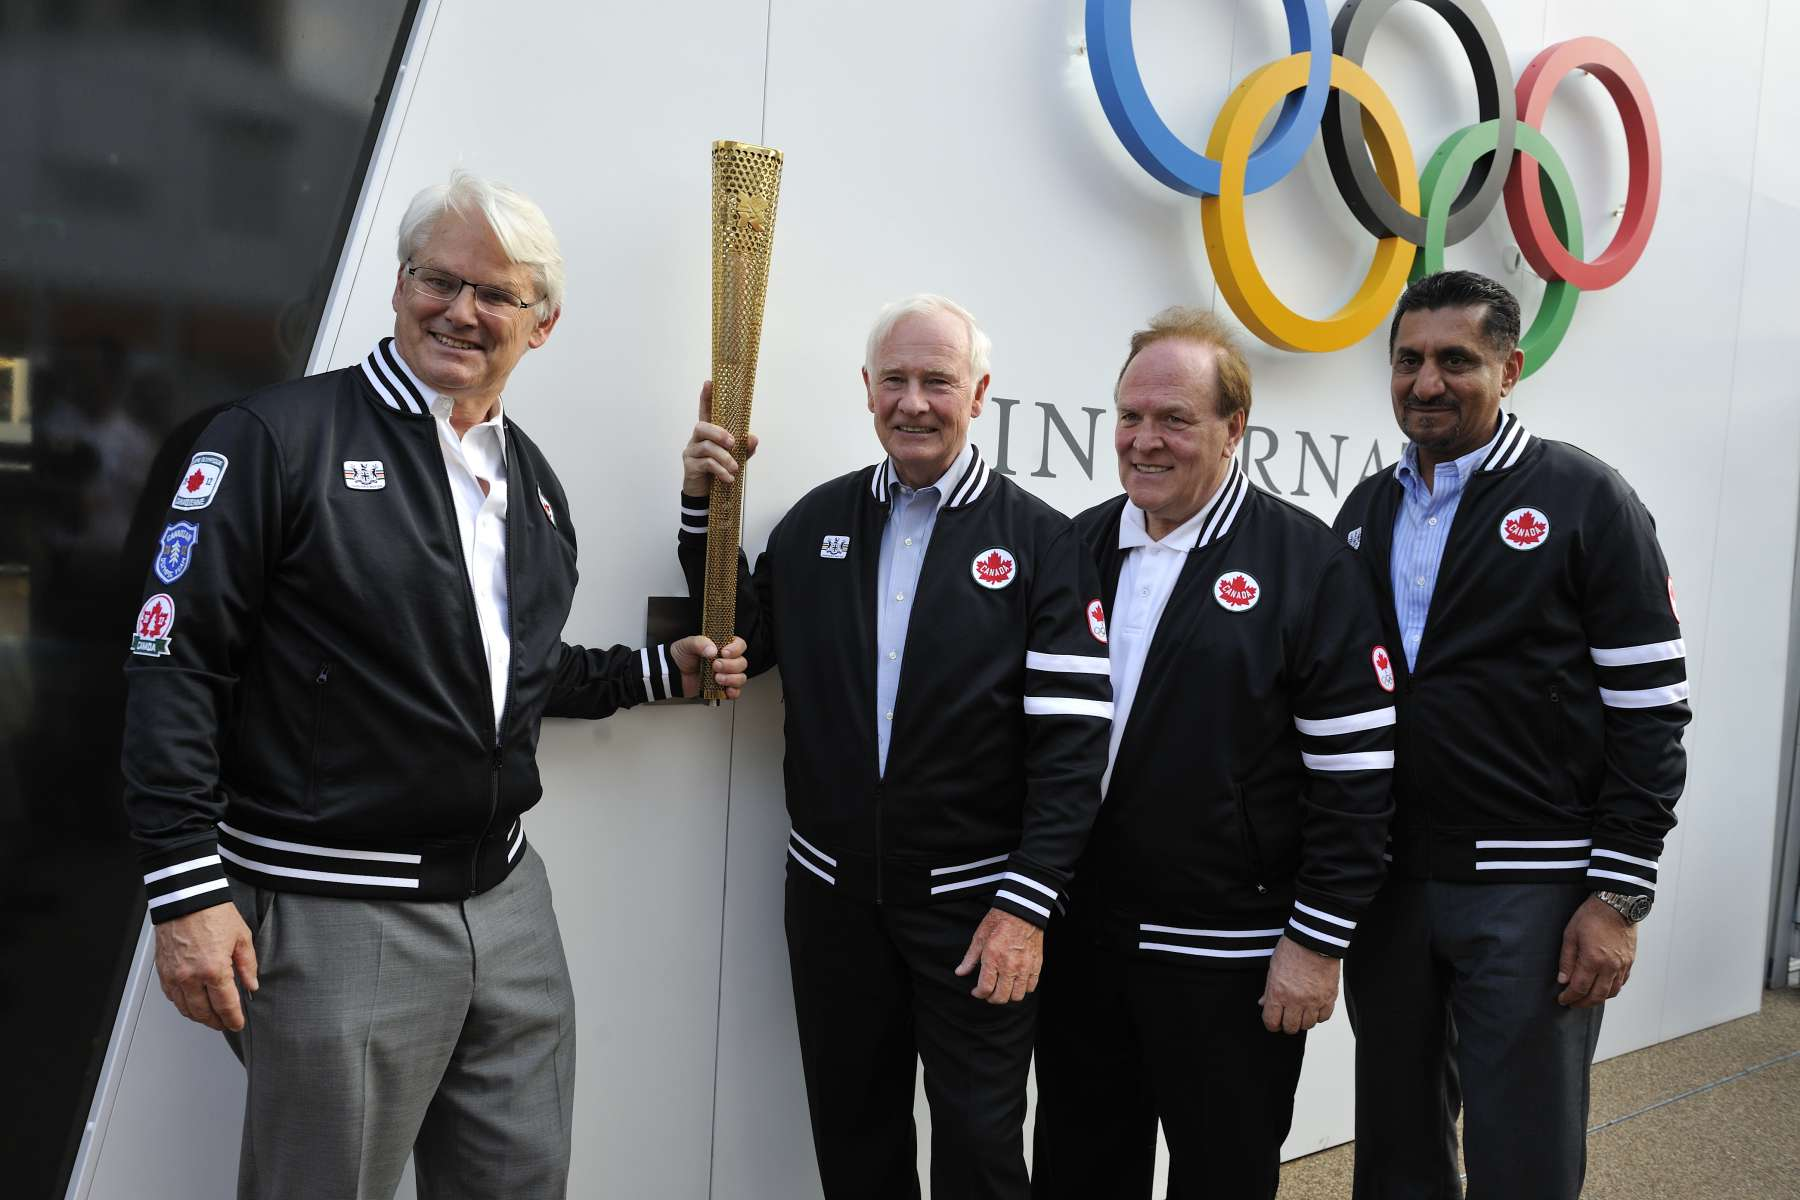 The Governor General held a replica of the Olympic flame.